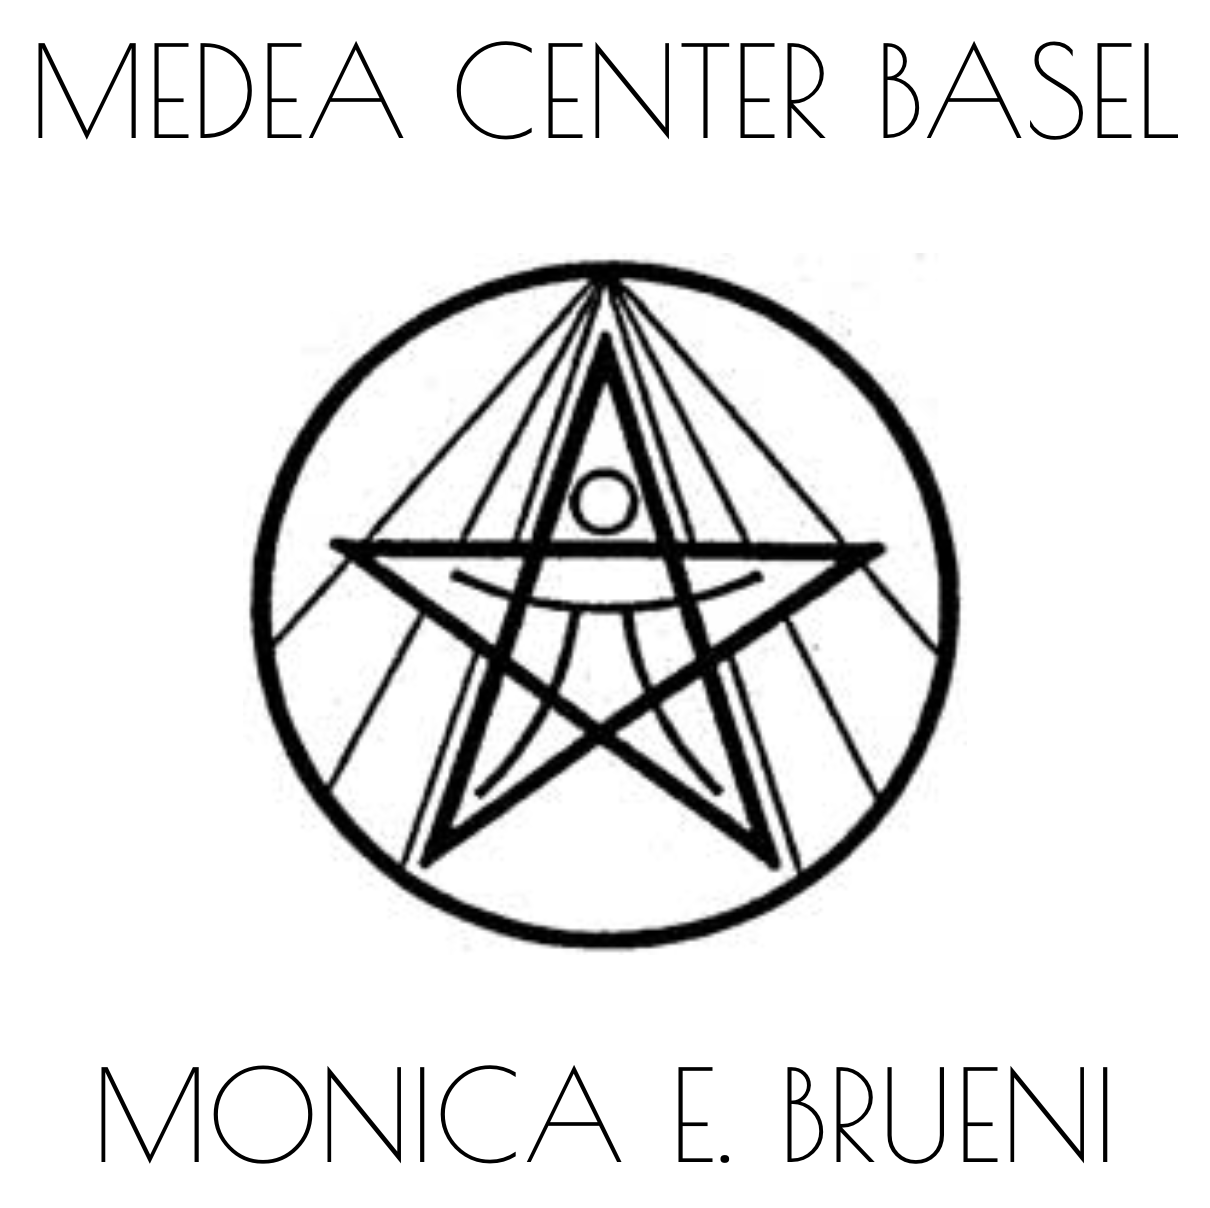 MEDEA CENTER